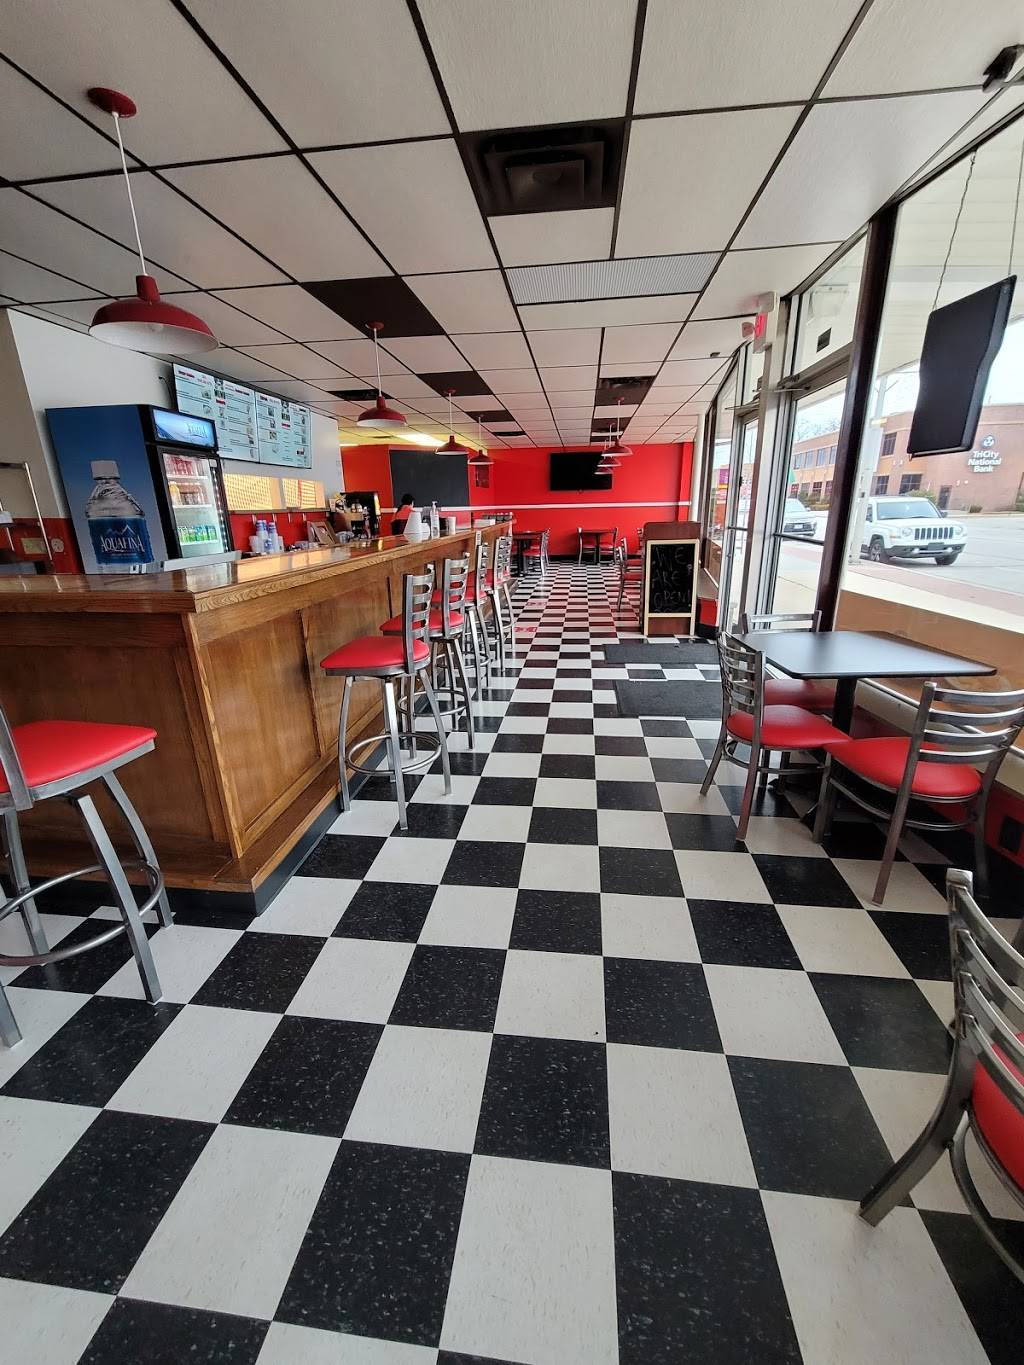 Burger Town | restaurant | 2206 10th Ave, South Milwaukee, WI 53172, USA | 4143019715 OR +1 414-301-9715